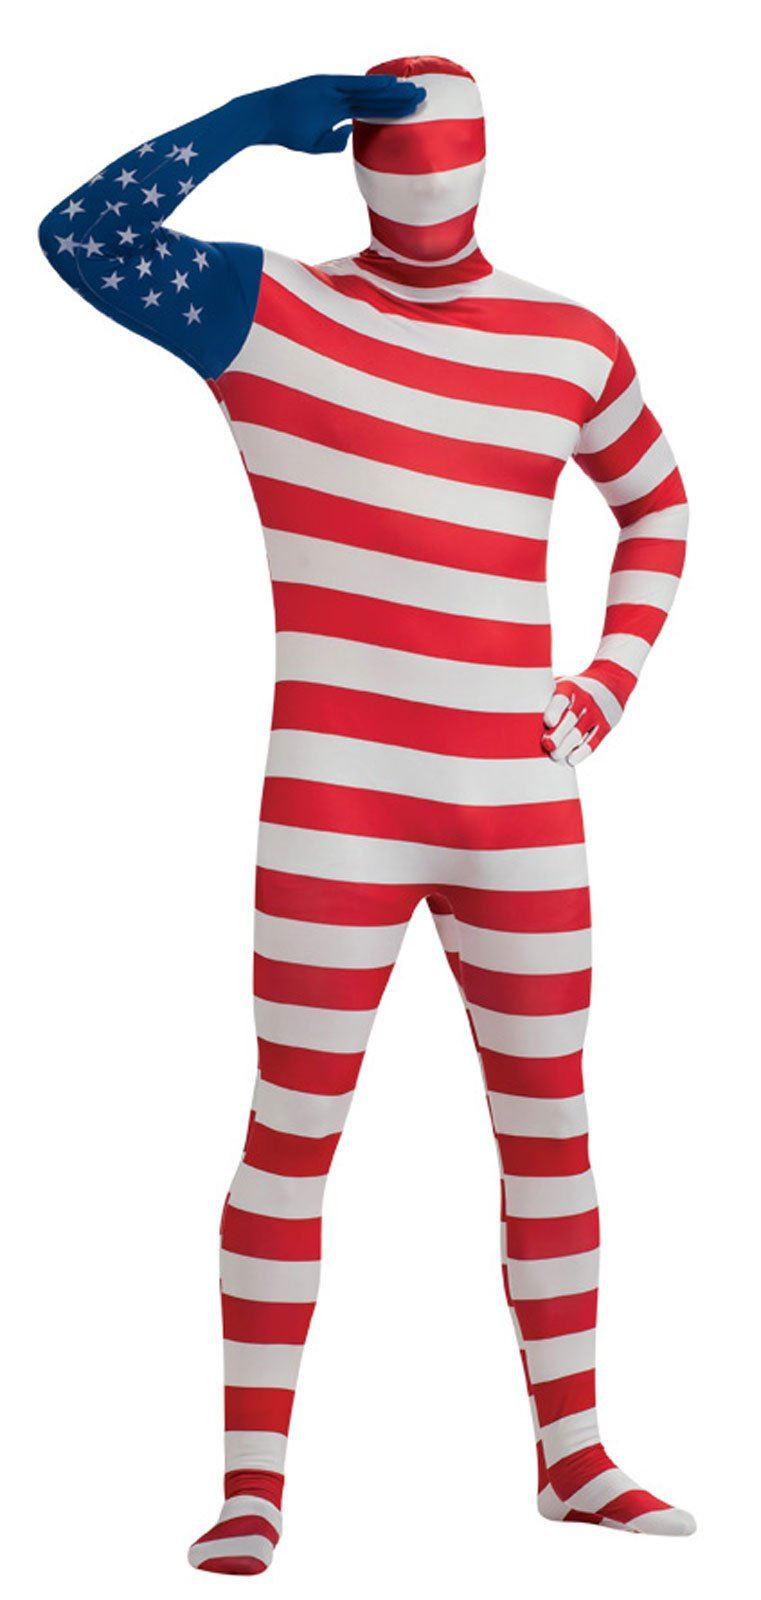 ... Adult American Flag Bodysuit Patriotic Costume. Click here to view  Large Image 12d23b4cf